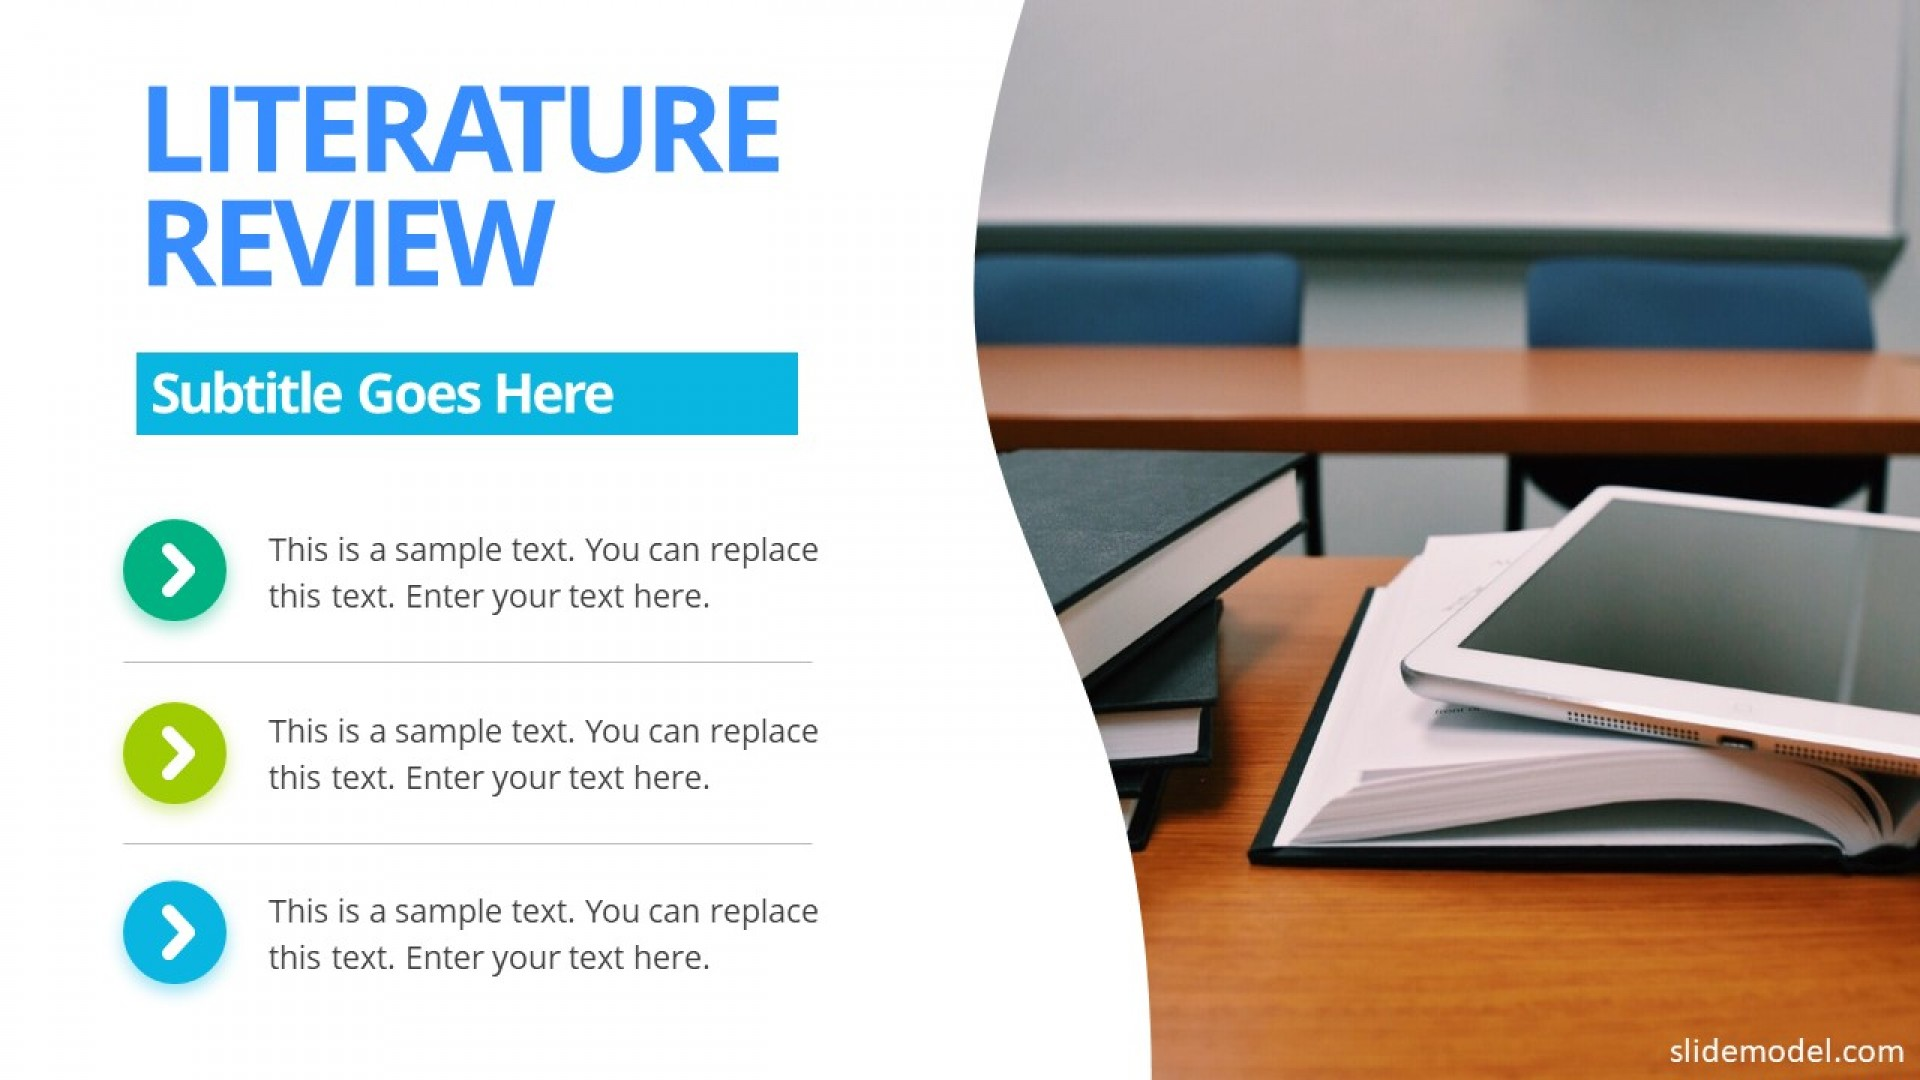 013 Literature Review Slide Powerpoint How To Prepare Research Paper Unique Ppt 1920